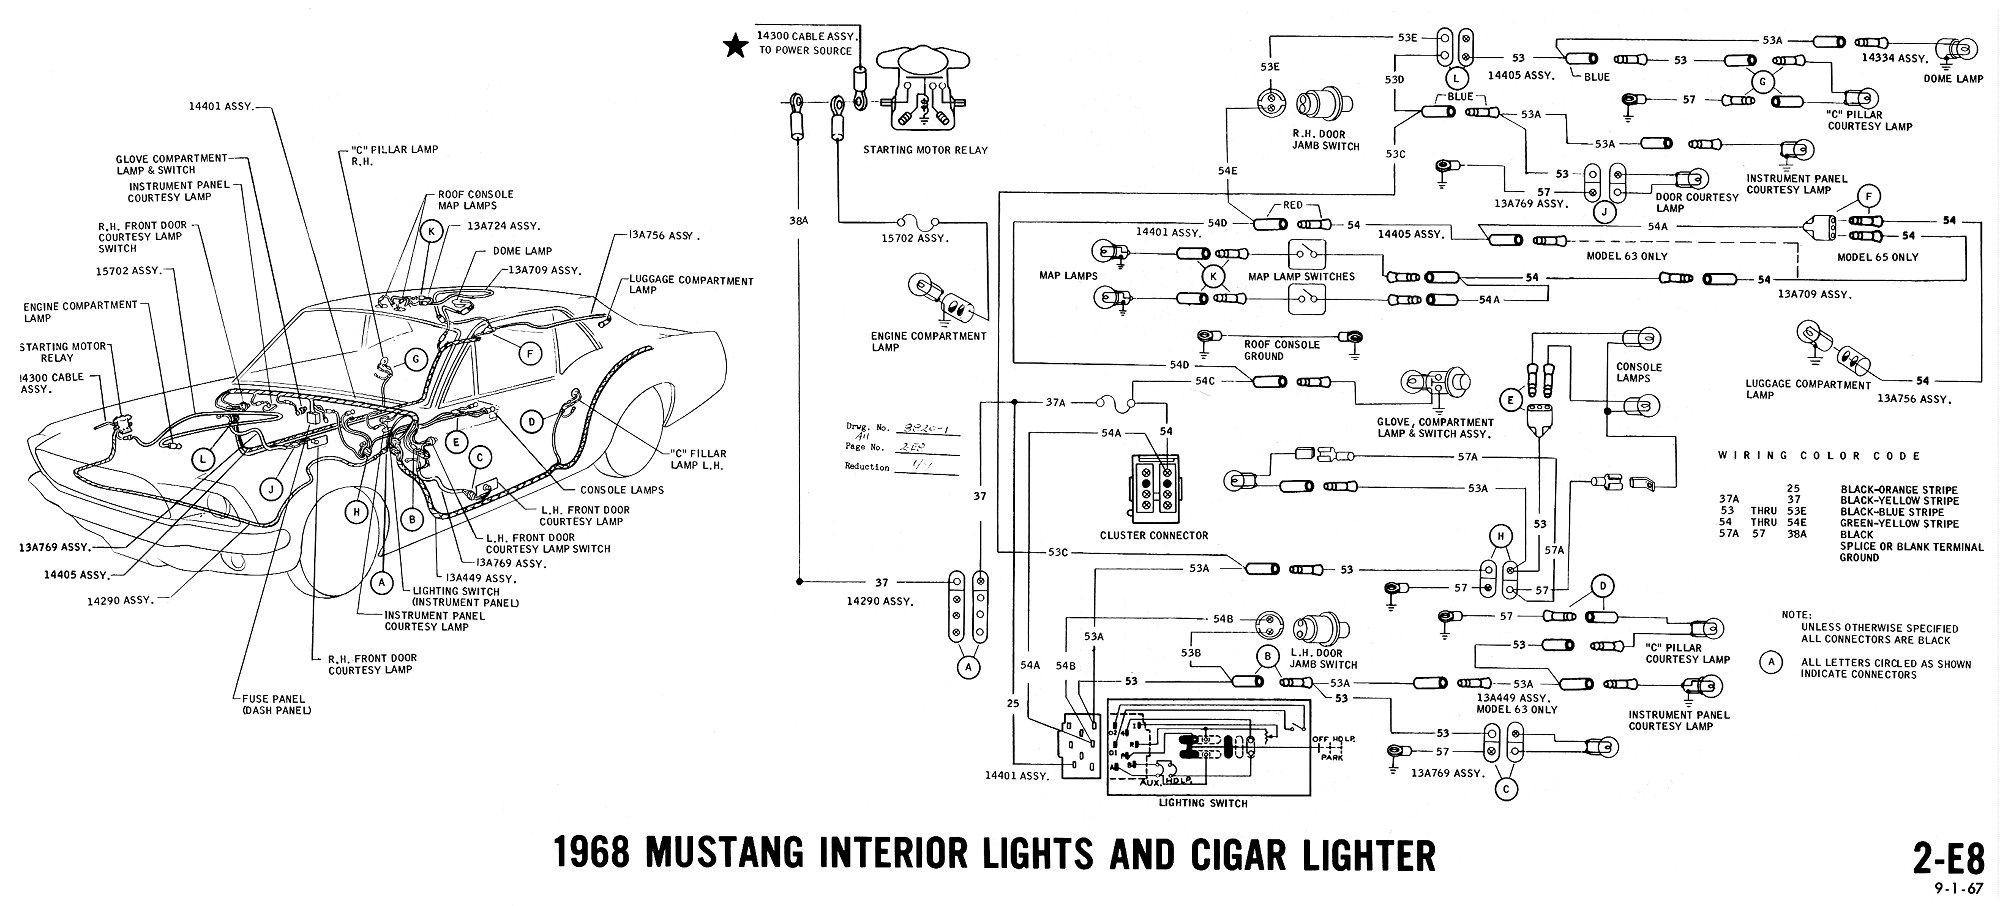 E8 66 mustang wiring diagram radio tape 66 mustang turn signal wiring 1990 mustang starter solenoid wiring diagram at nearapp.co